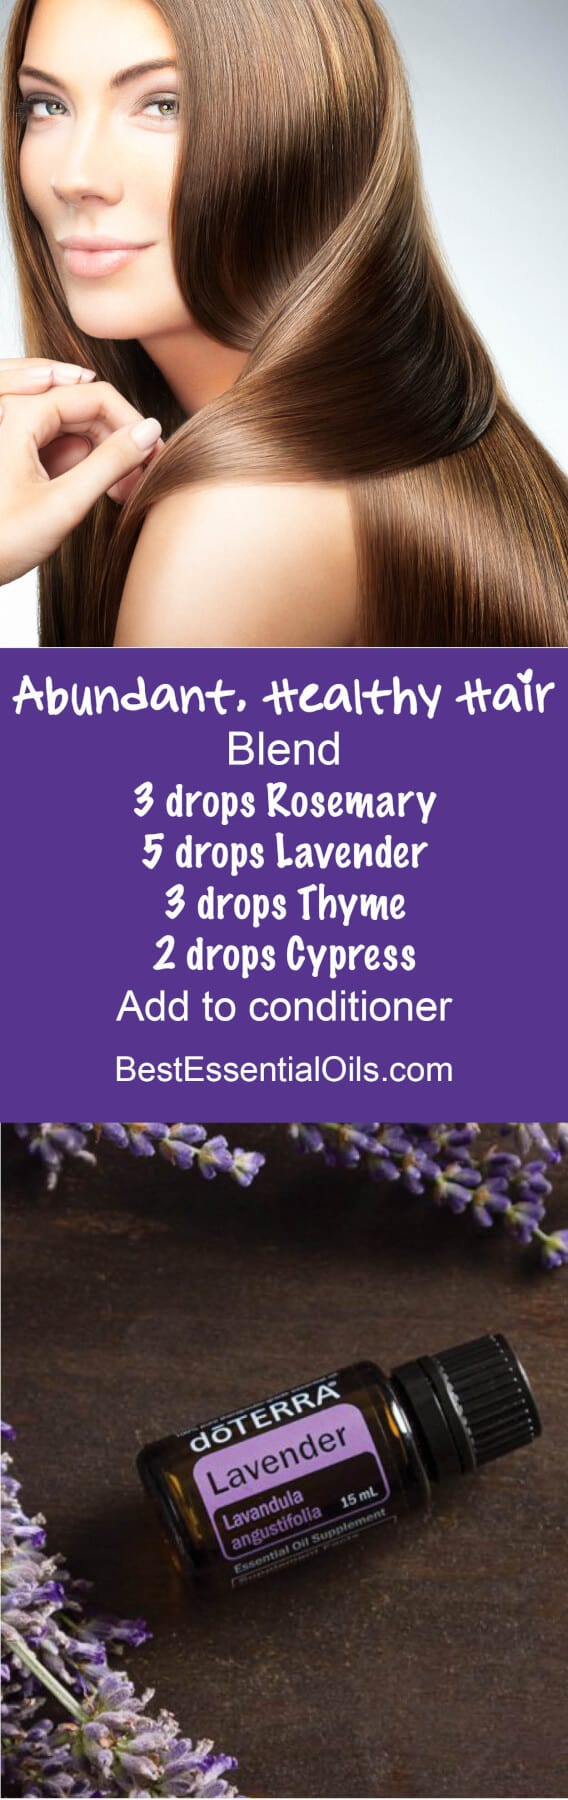 doTERRA Essential Oils for Abundant, Healthy Hair